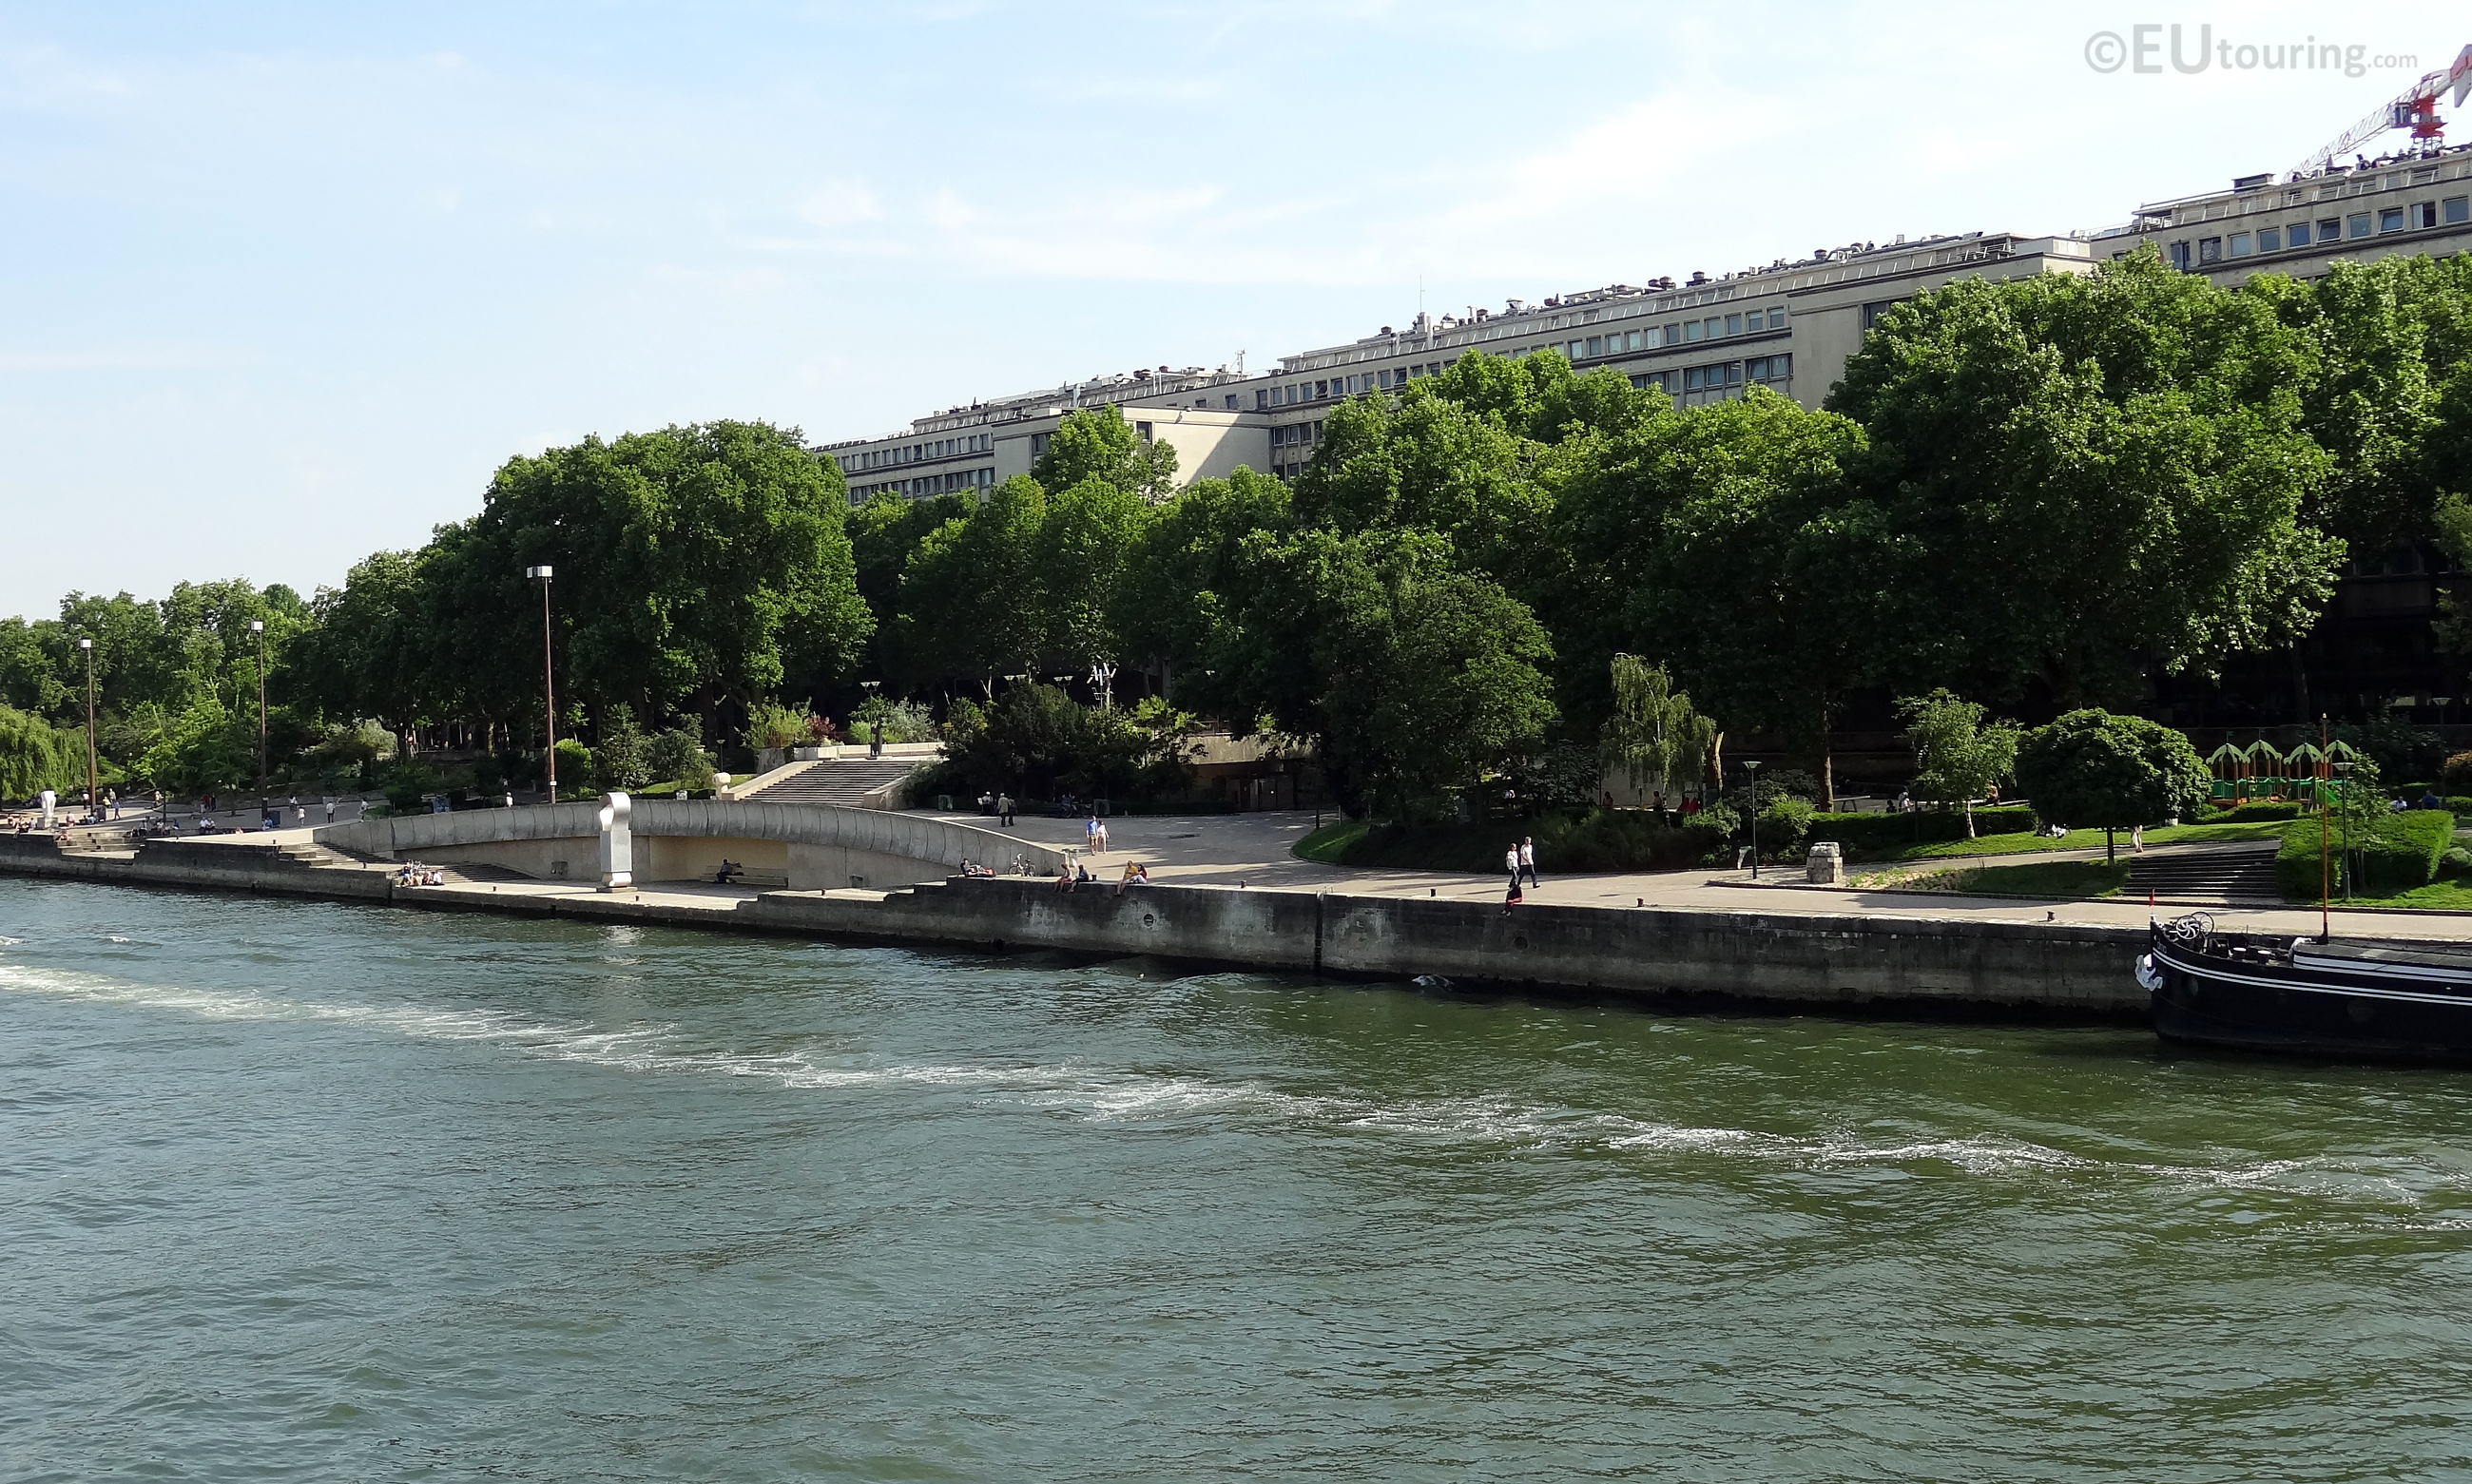 Jardin tino rossi from the river seine eutouring for Jardin tino rossi